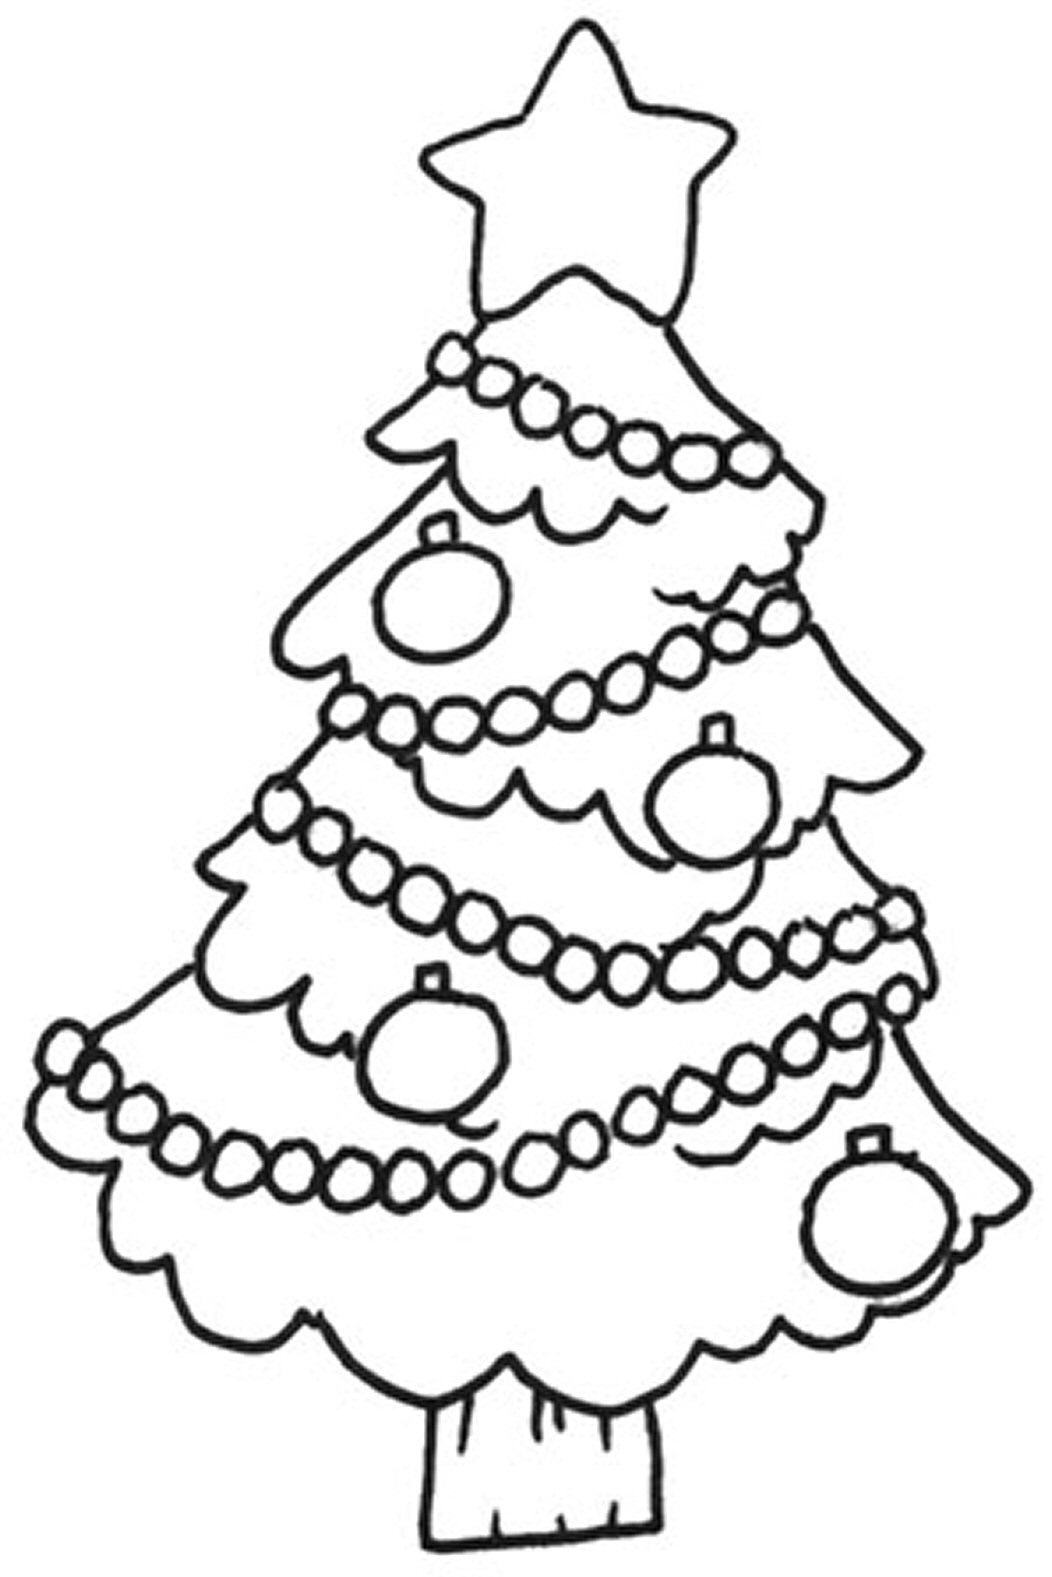 Christmas Coloring Pages Print drawing free image download